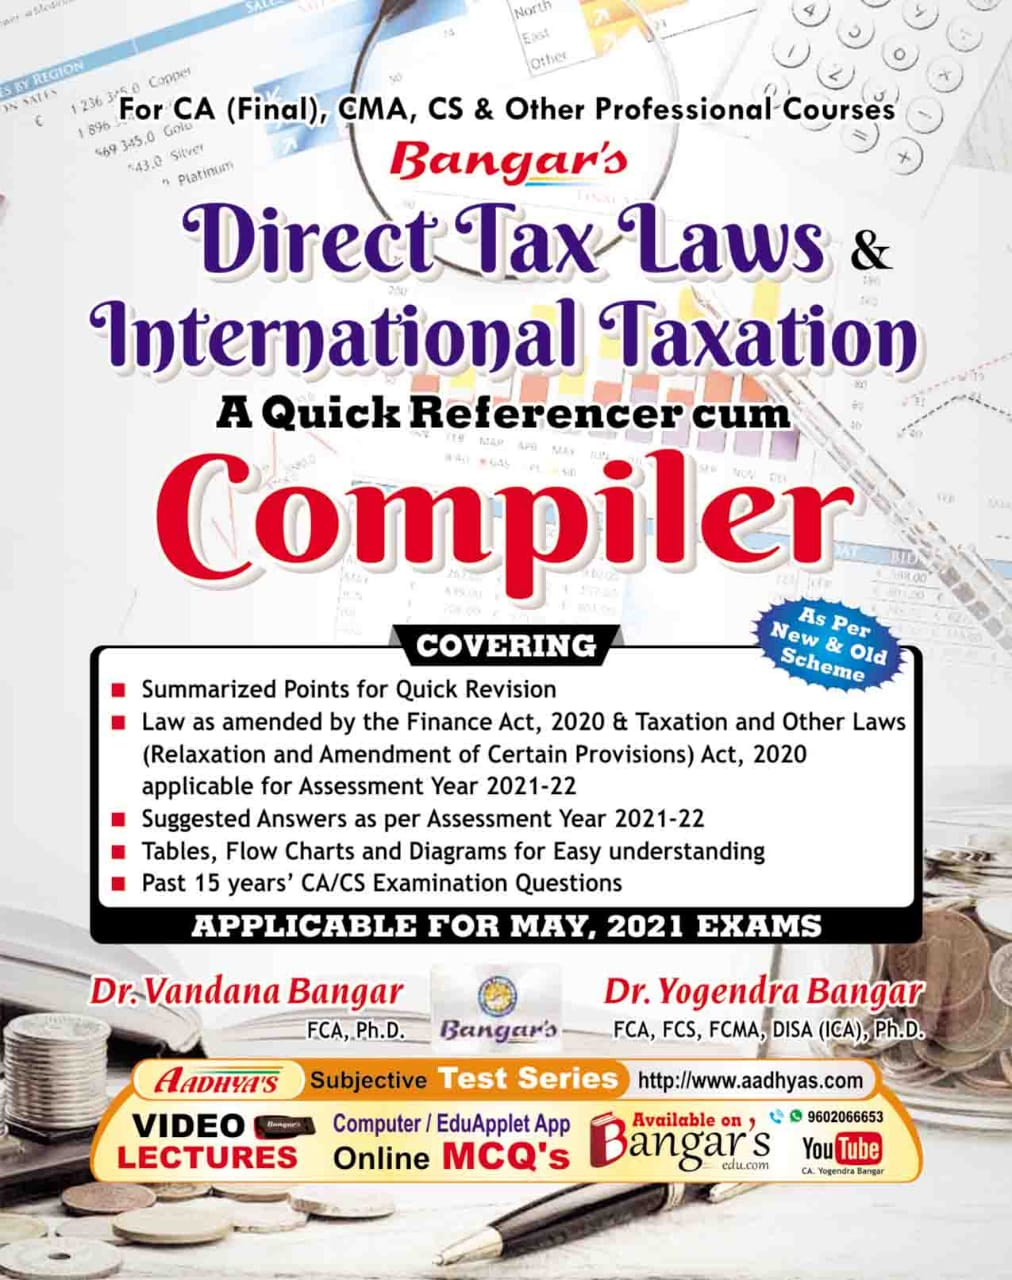 Bangar's Comprehensive Guide to Direct Tax Laws Quick referencer cum Compiler for CA Final By Dr. Yogendra Bangar Dr. Vandana Bangar for CA Final, CMA, CS & Other Professional Courses (Aadhya Prakashan Publishing) Edition 2021